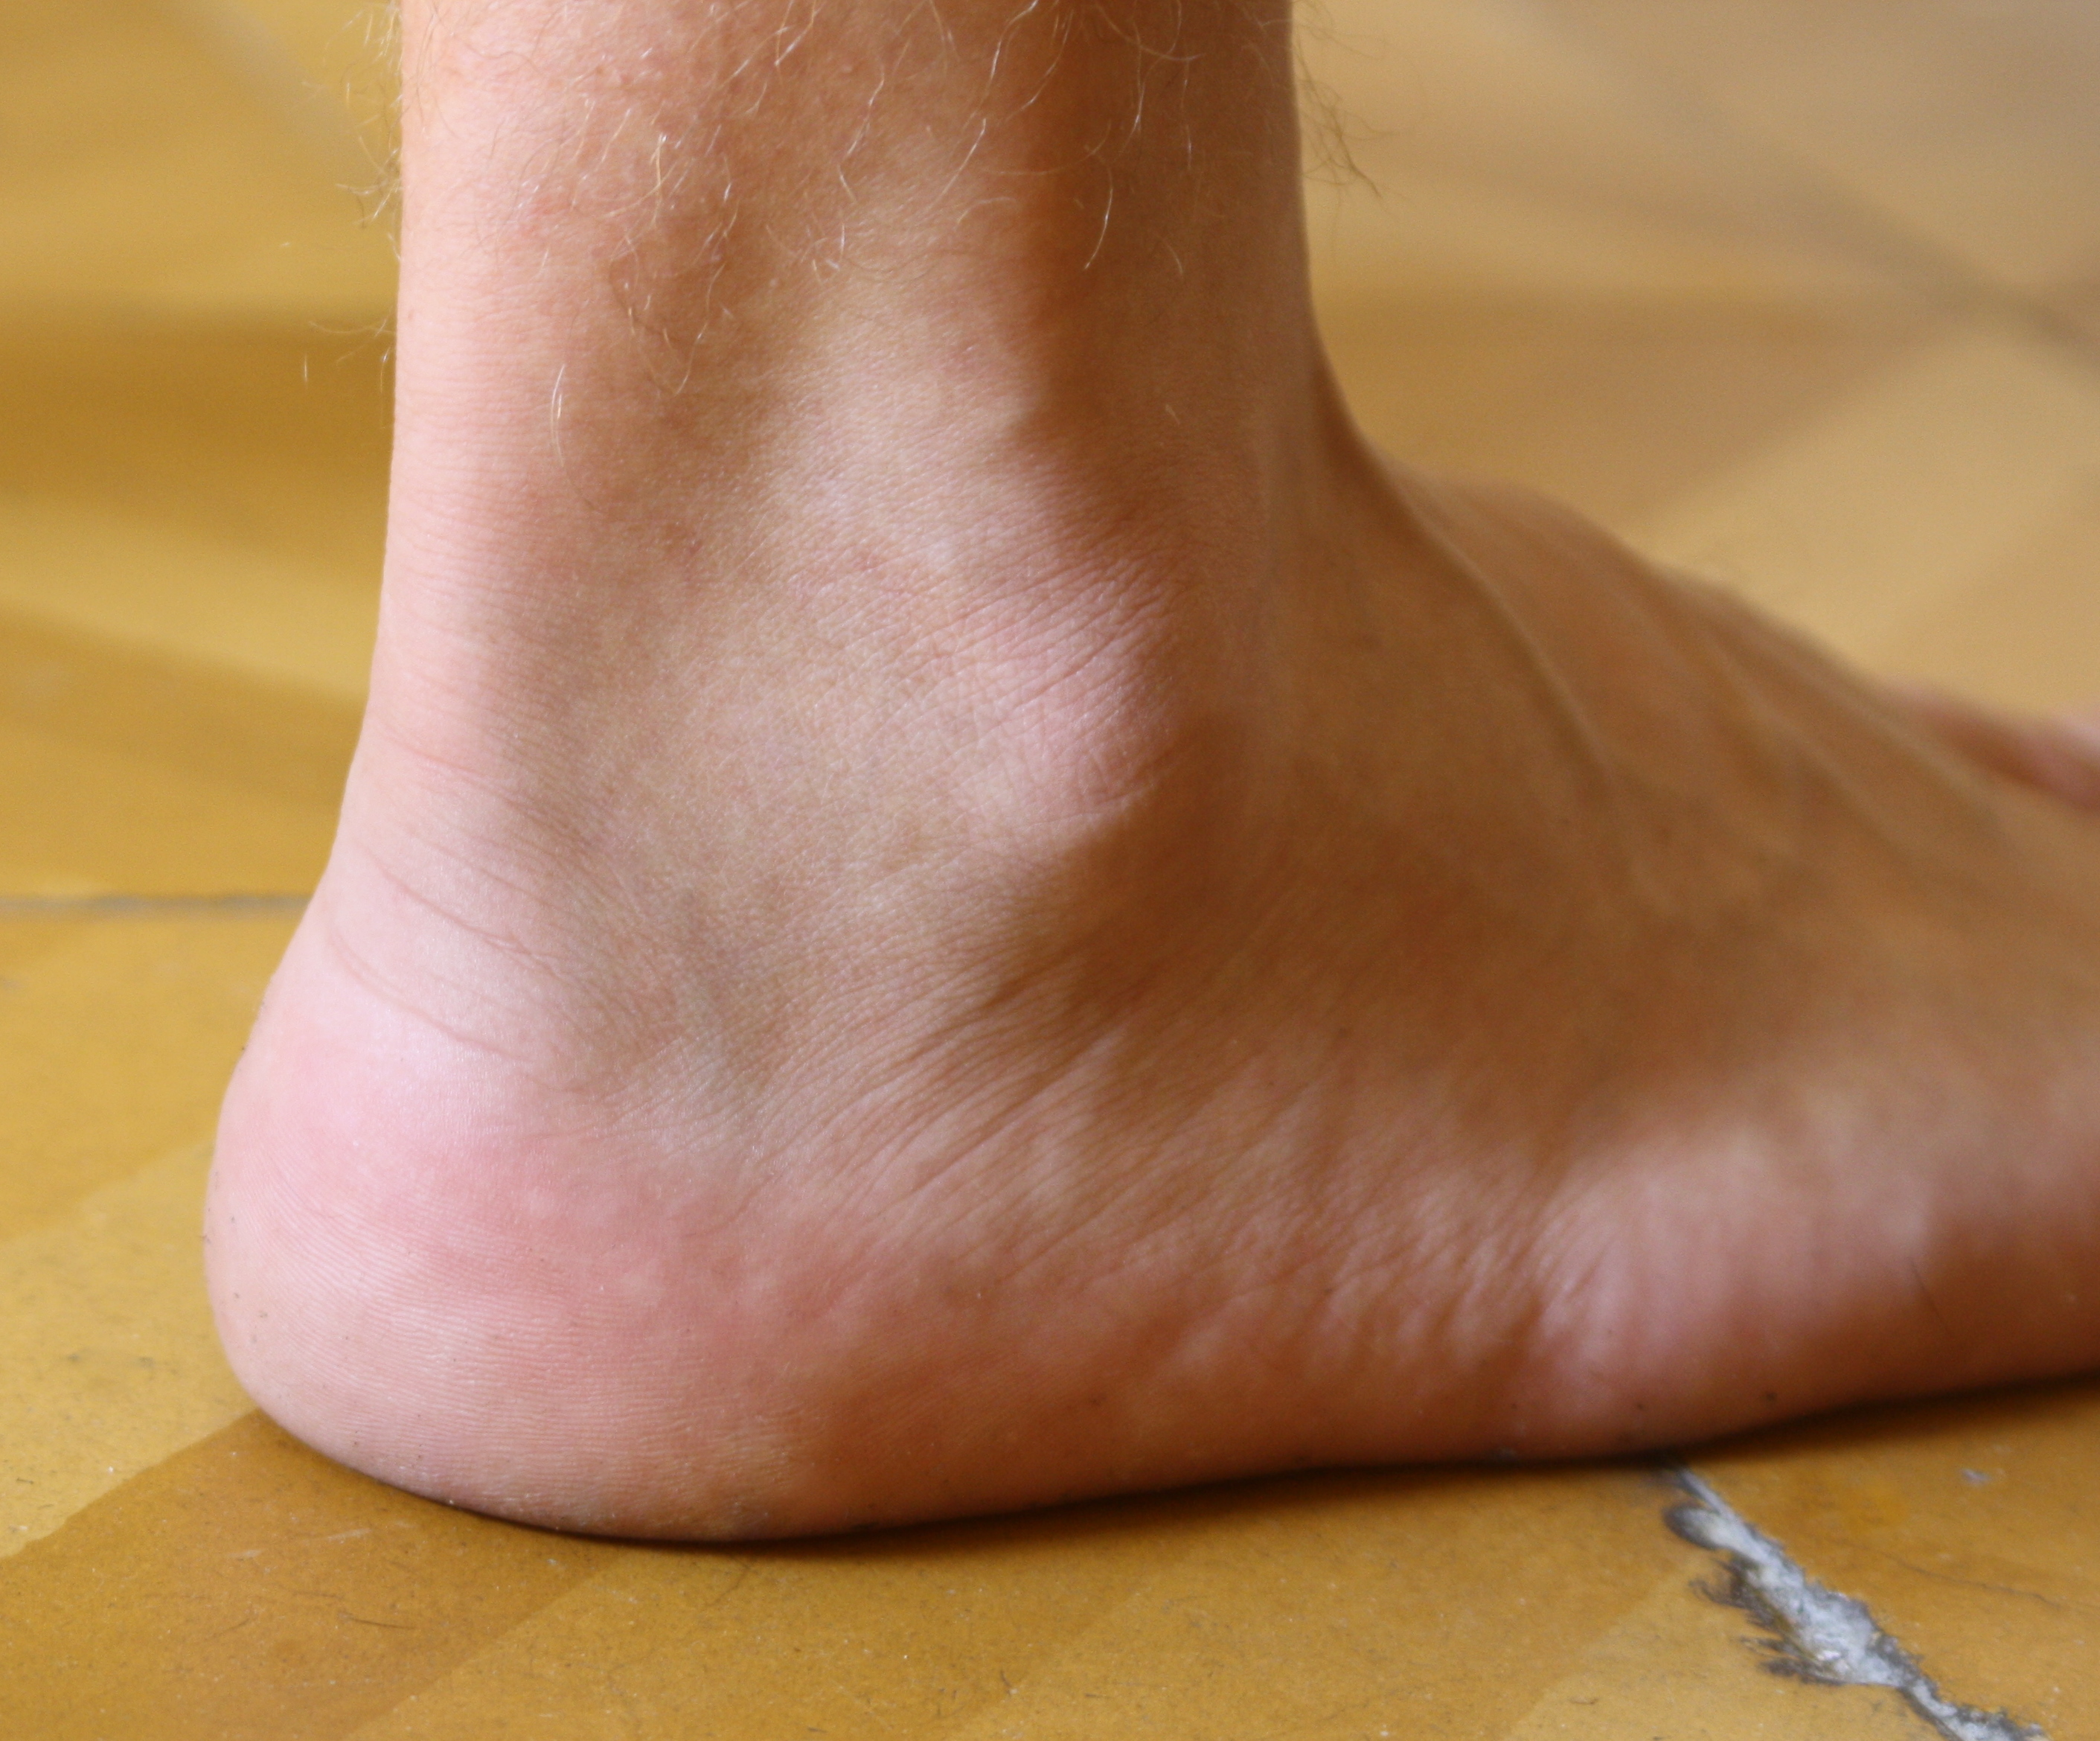 https://upload.wikimedia.org/wikipedia/commons/7/74/Ankle.jpg